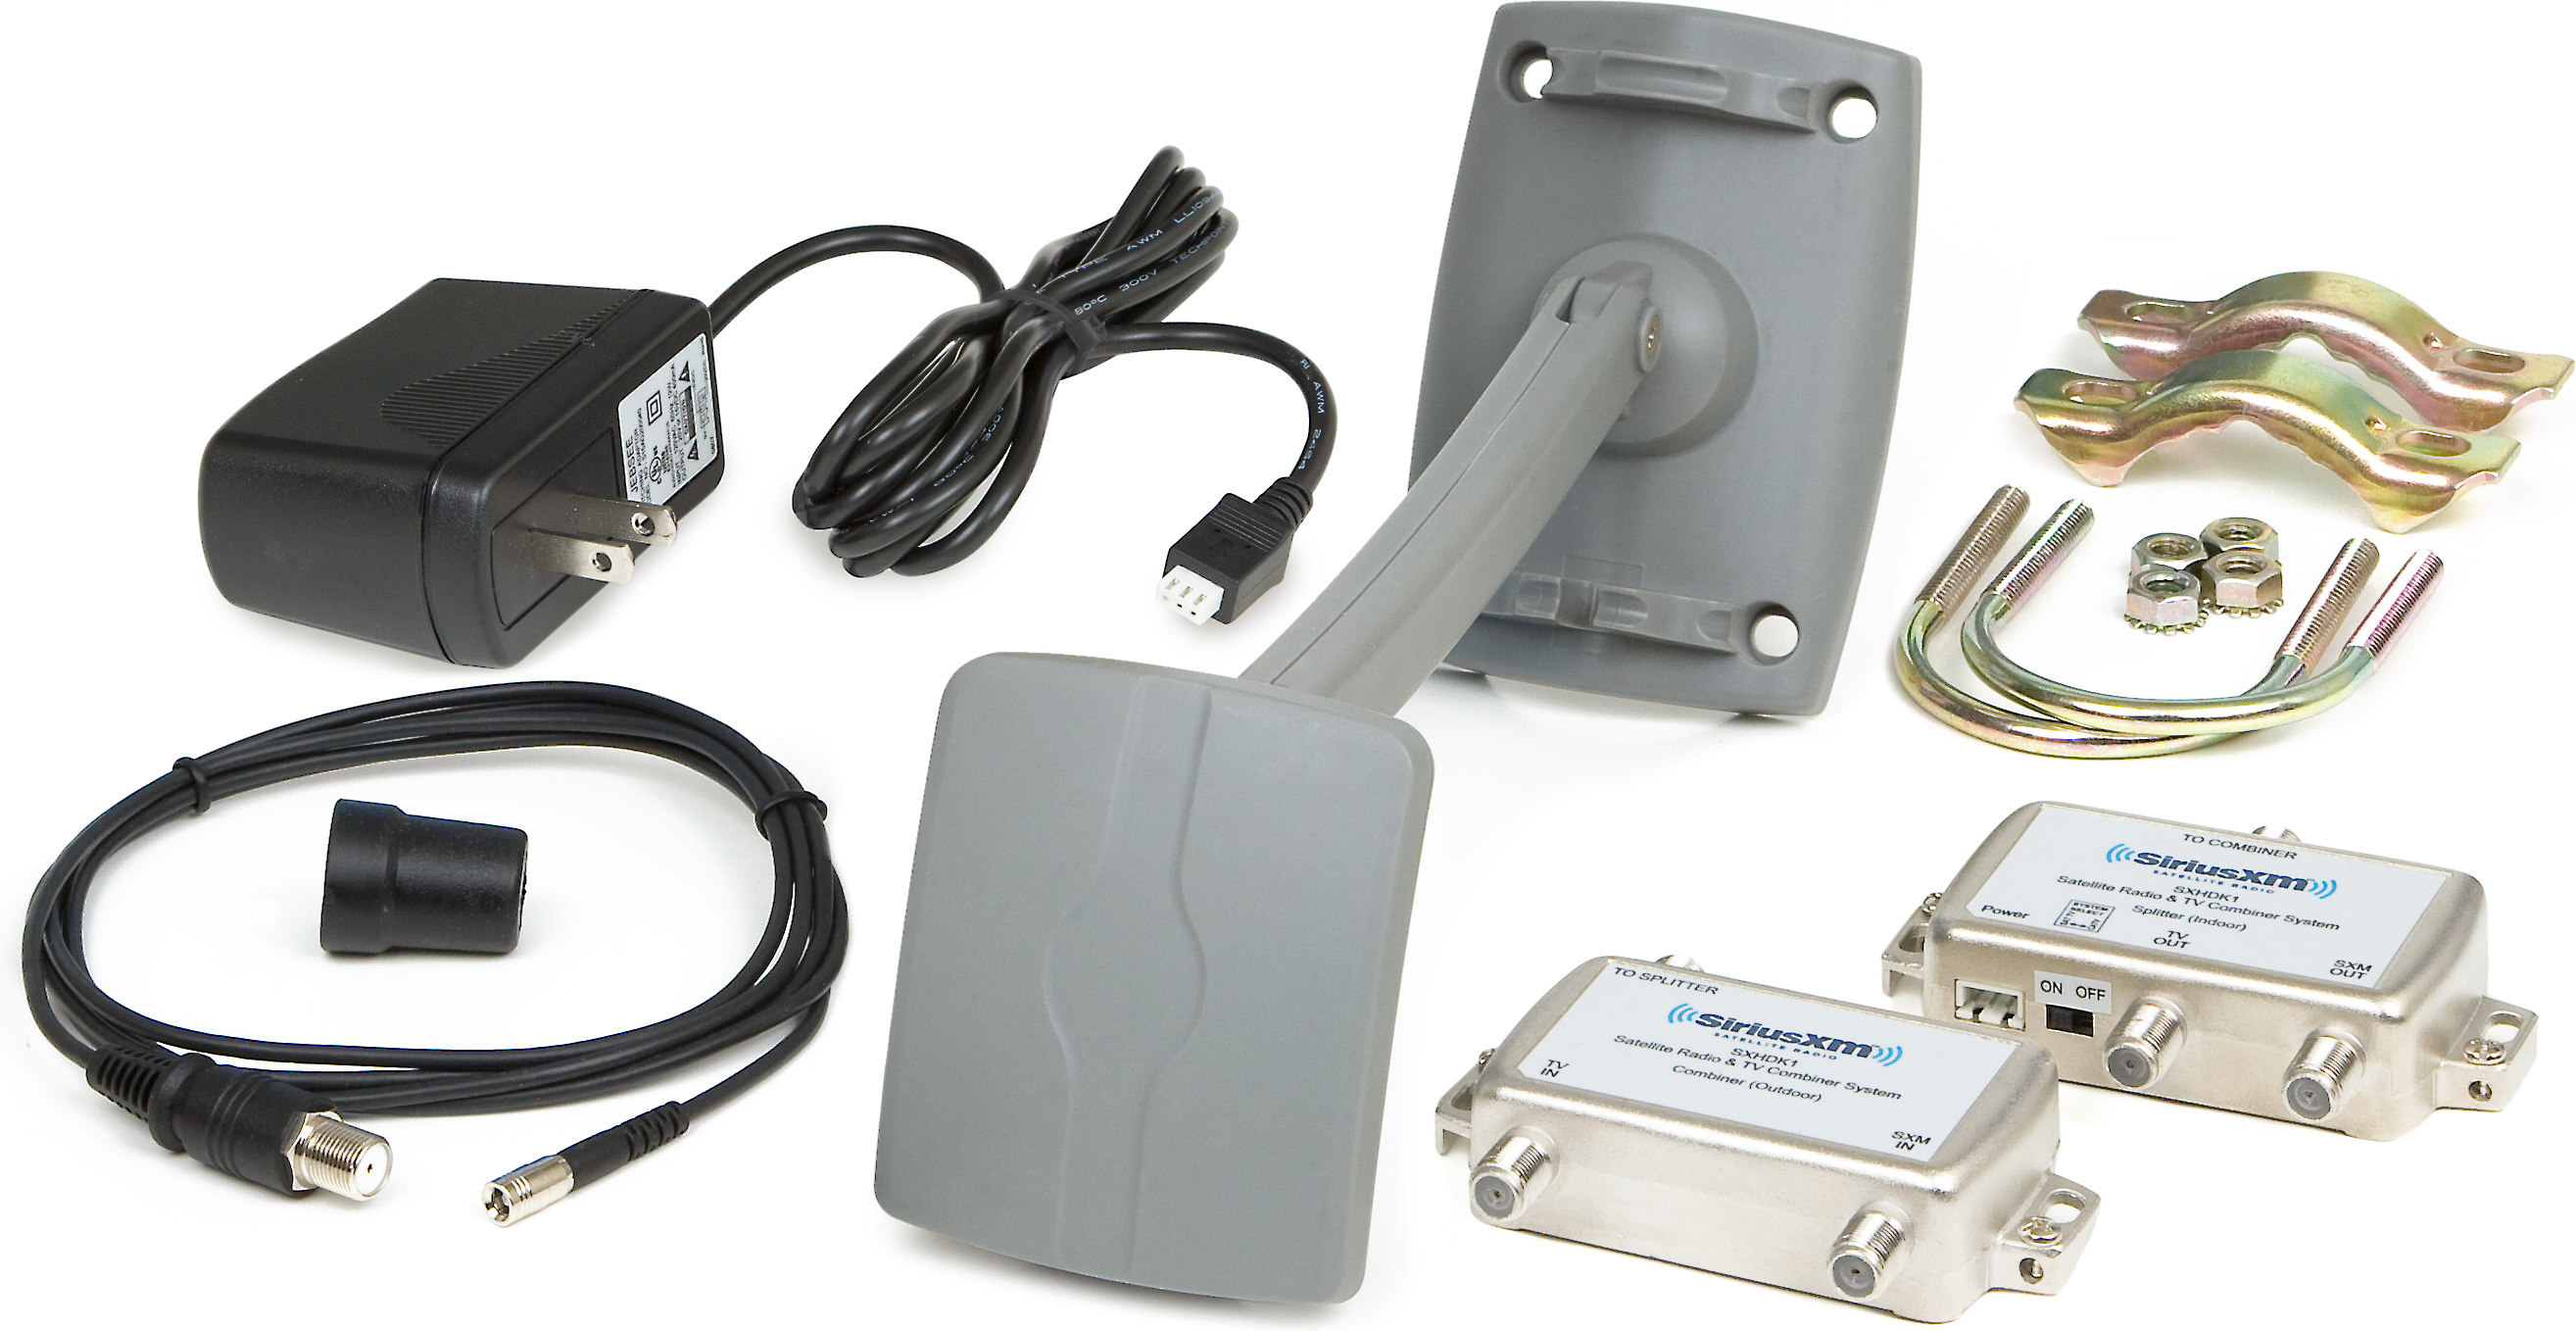 SiriusXM Home Antenna and Signal Distribution Kit Uses your ... on